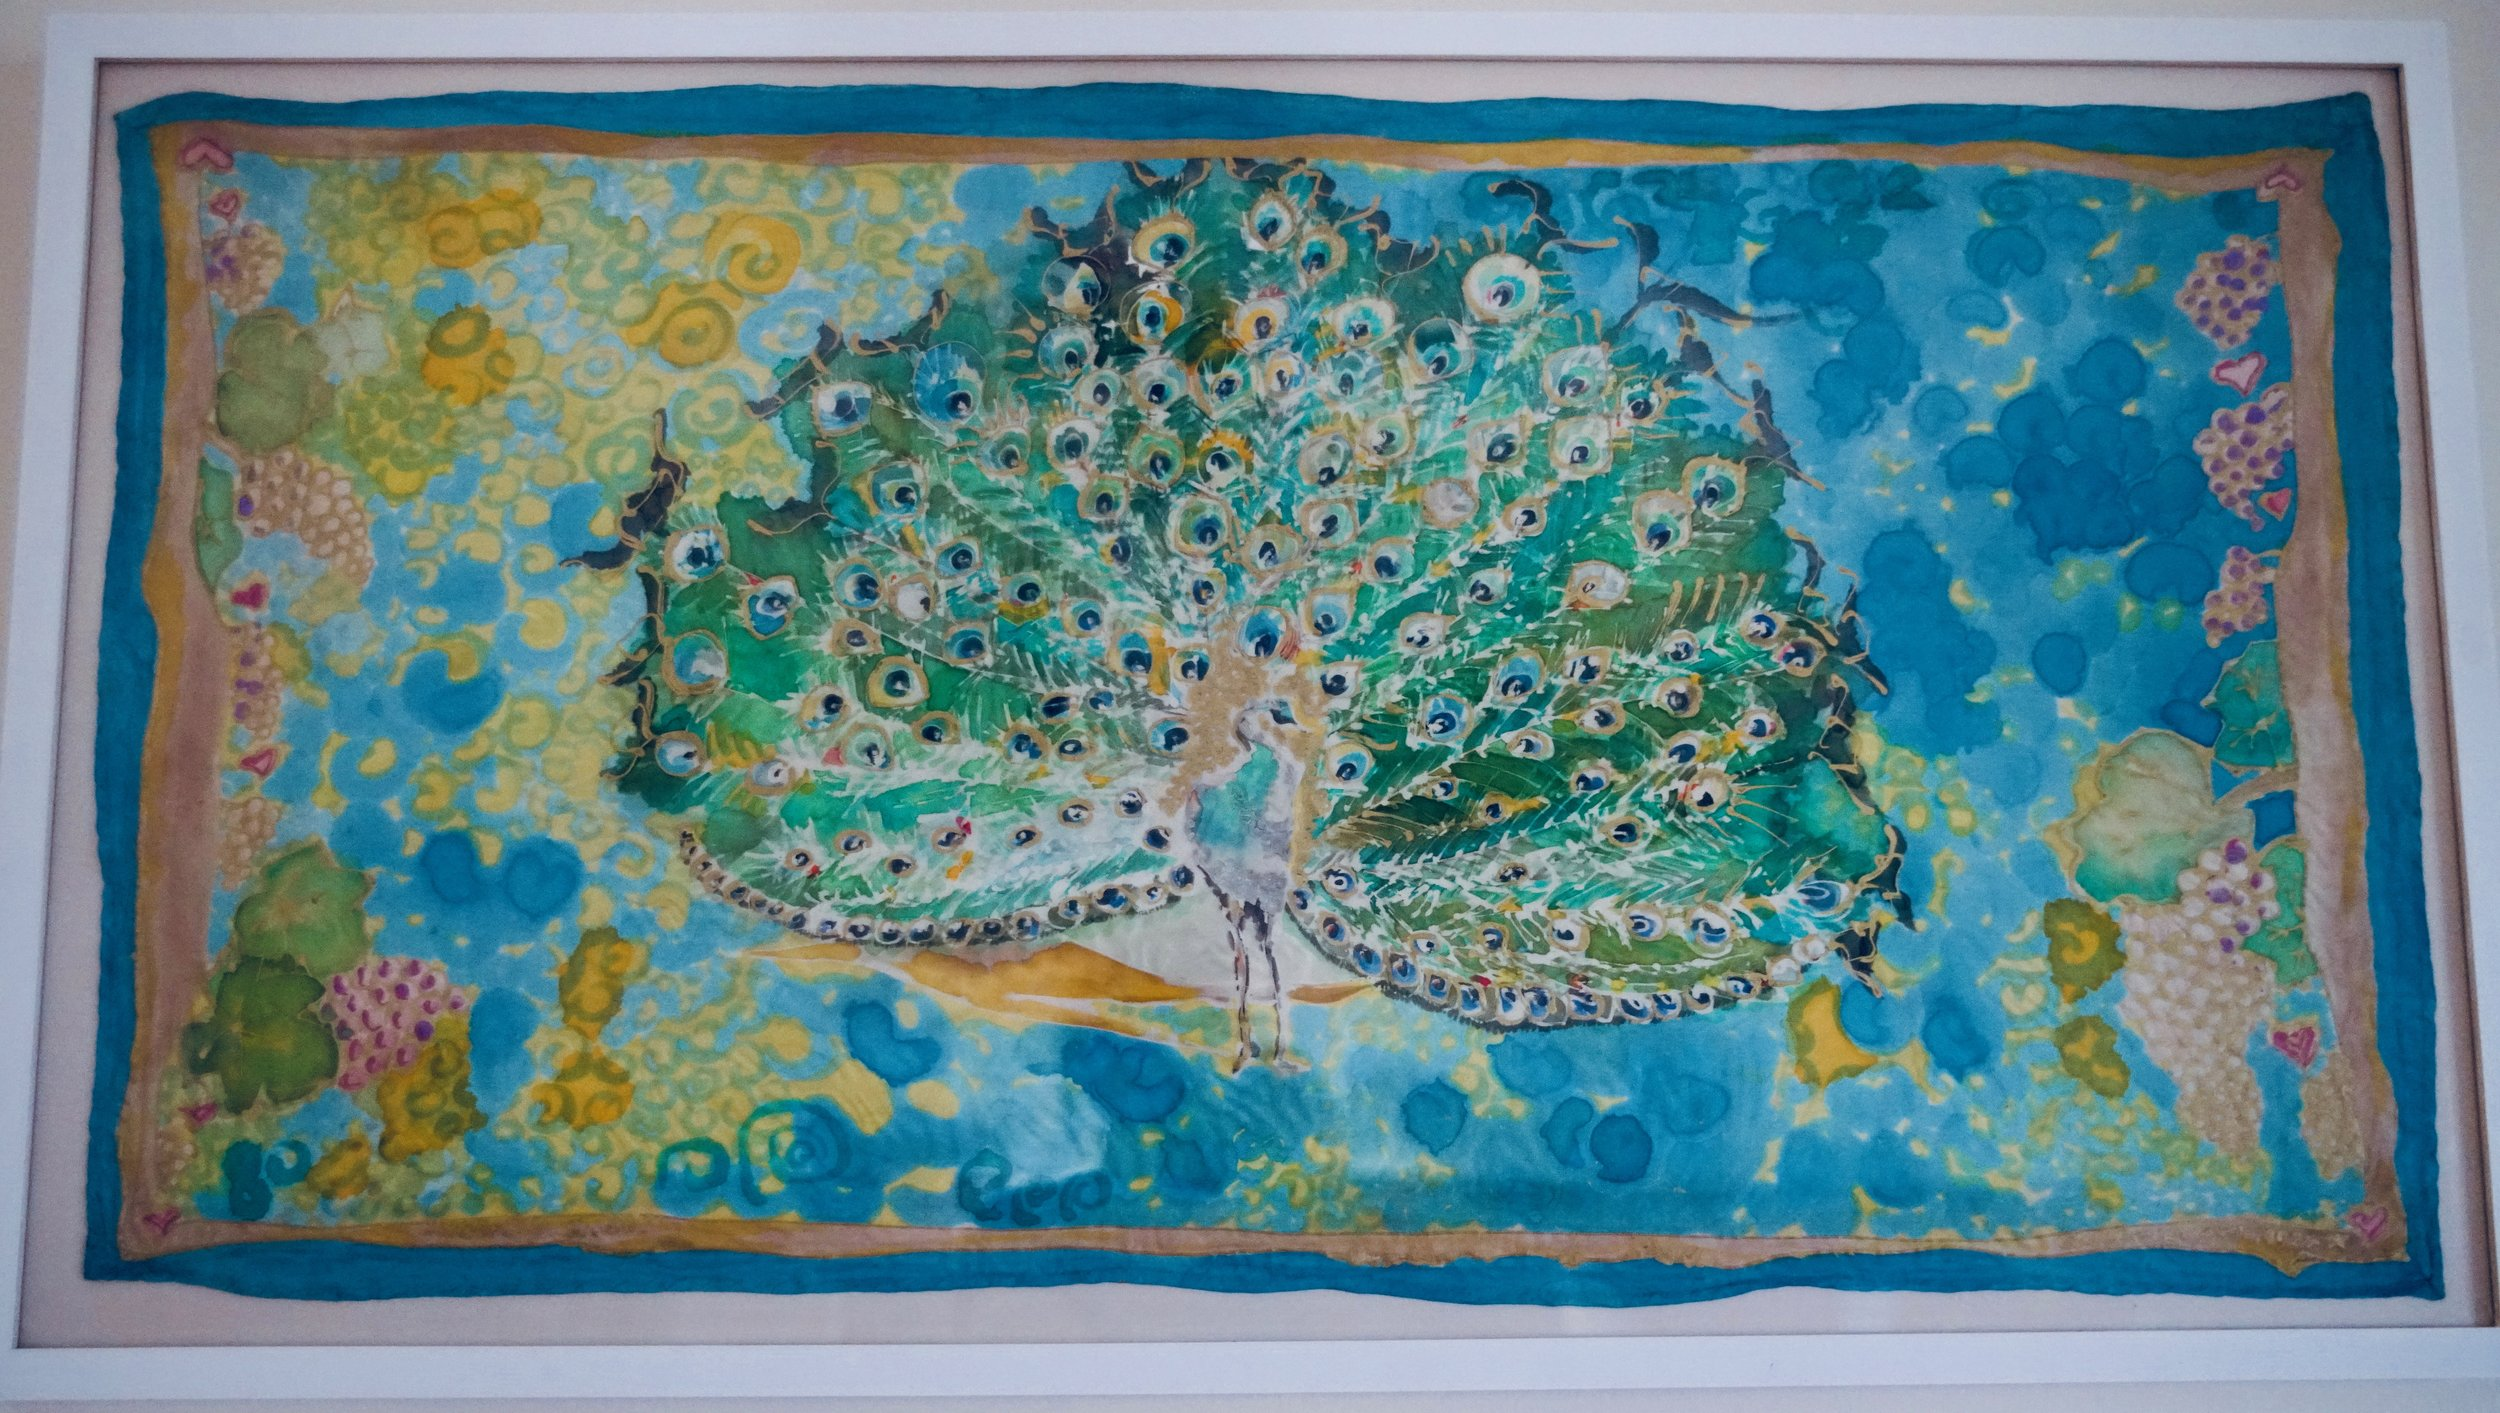 THE PEACOCK OF ENLIGHTENMENT, PAINTING ON SILK, 46.4 X 26 INCHES